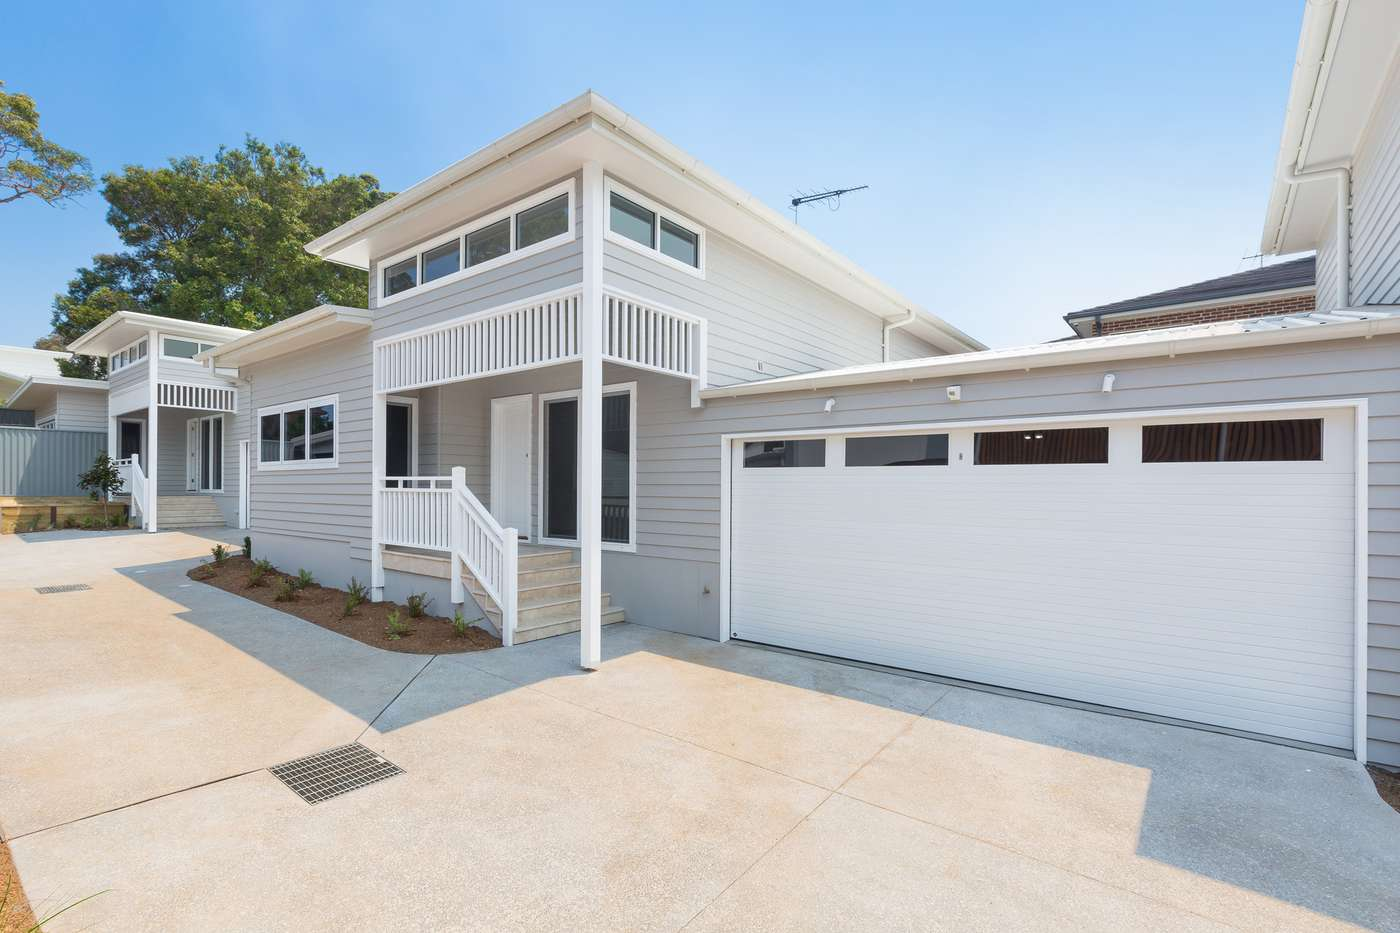 Main view of Homely villa listing, 2/6 Dudley Avenue, Caringbah South, NSW 2229